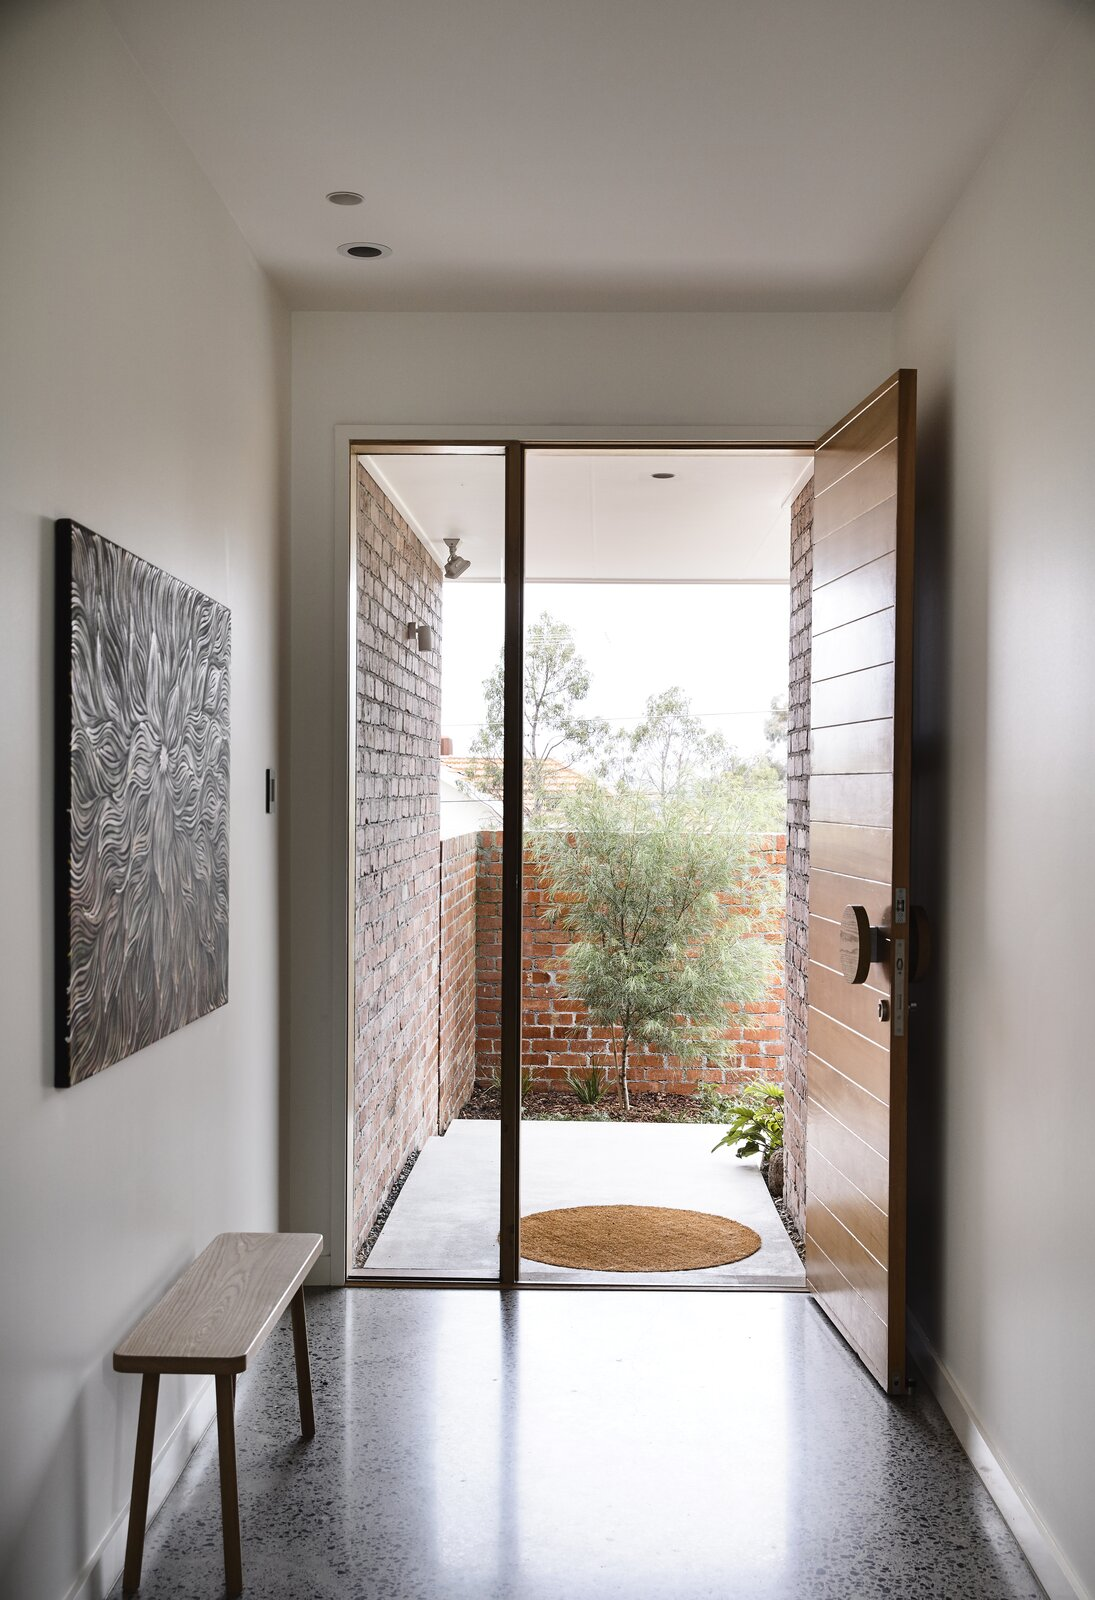 Photo 2 of 25 in This Melbourne Home Sits Pretty on a Slightly Sloped Site